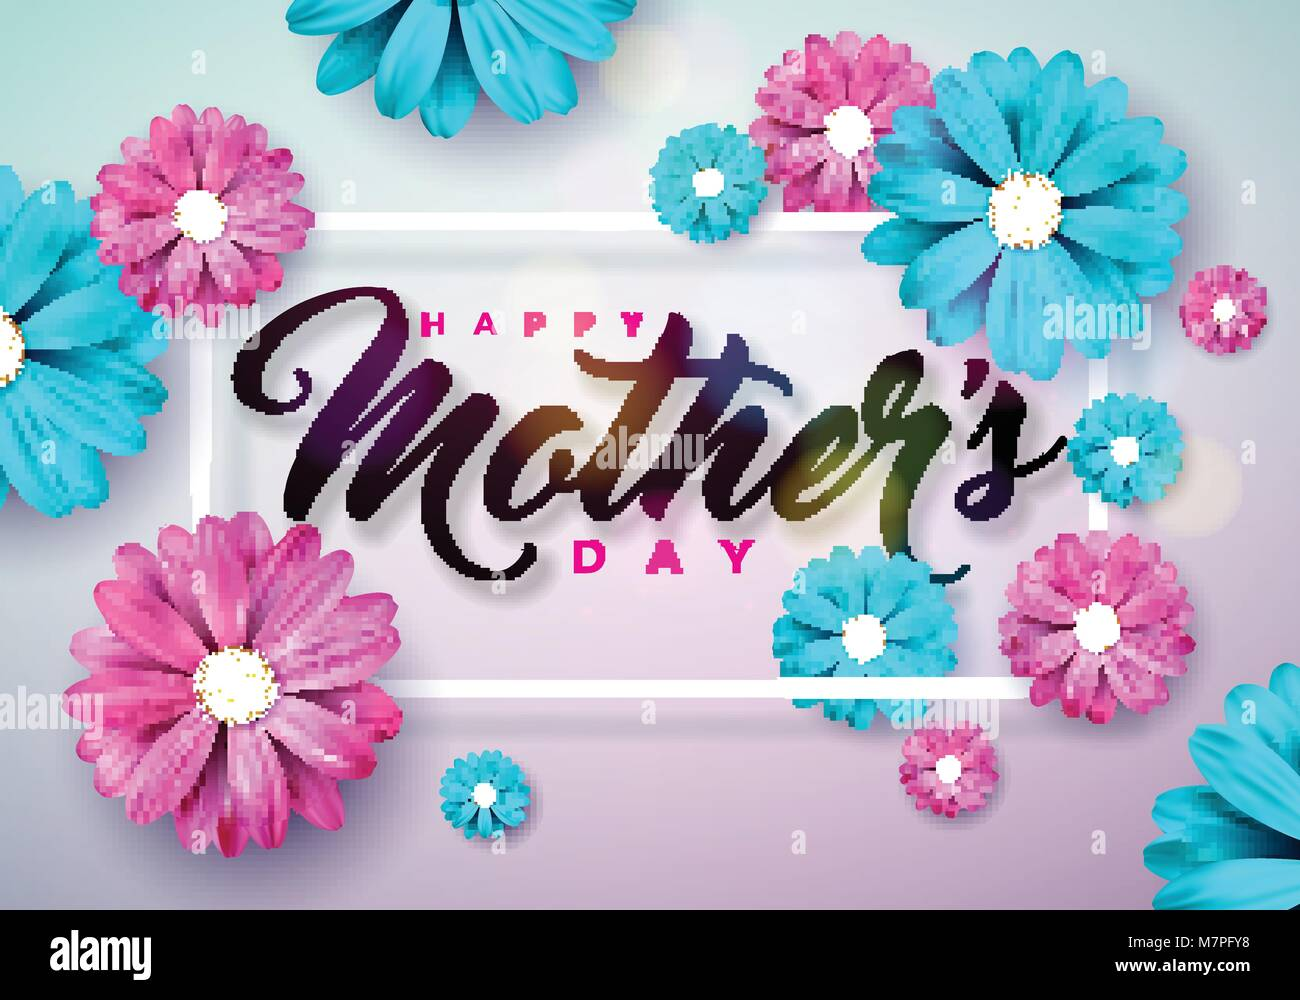 Happy mothers day greeting card with flower on pink background stock happy mothers day greeting card with flower on pink background vector celebration illustration template with typographic design for banner flyer m4hsunfo